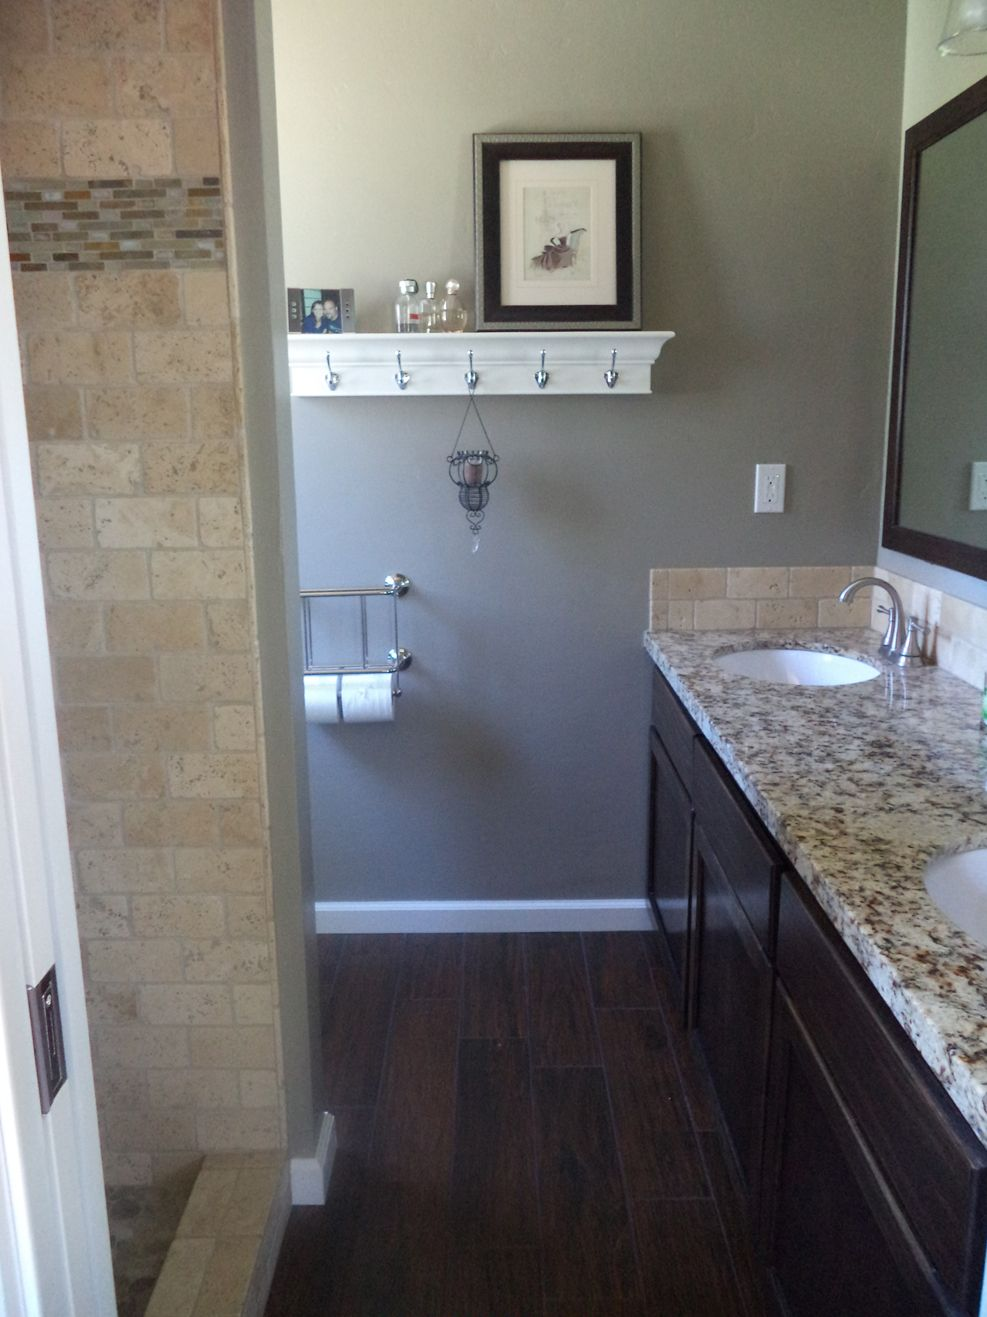 Pin By Lisa Natoli On New Bathroom Small Master Bathroom Wood Floor Bathroom Dark Tile Floors